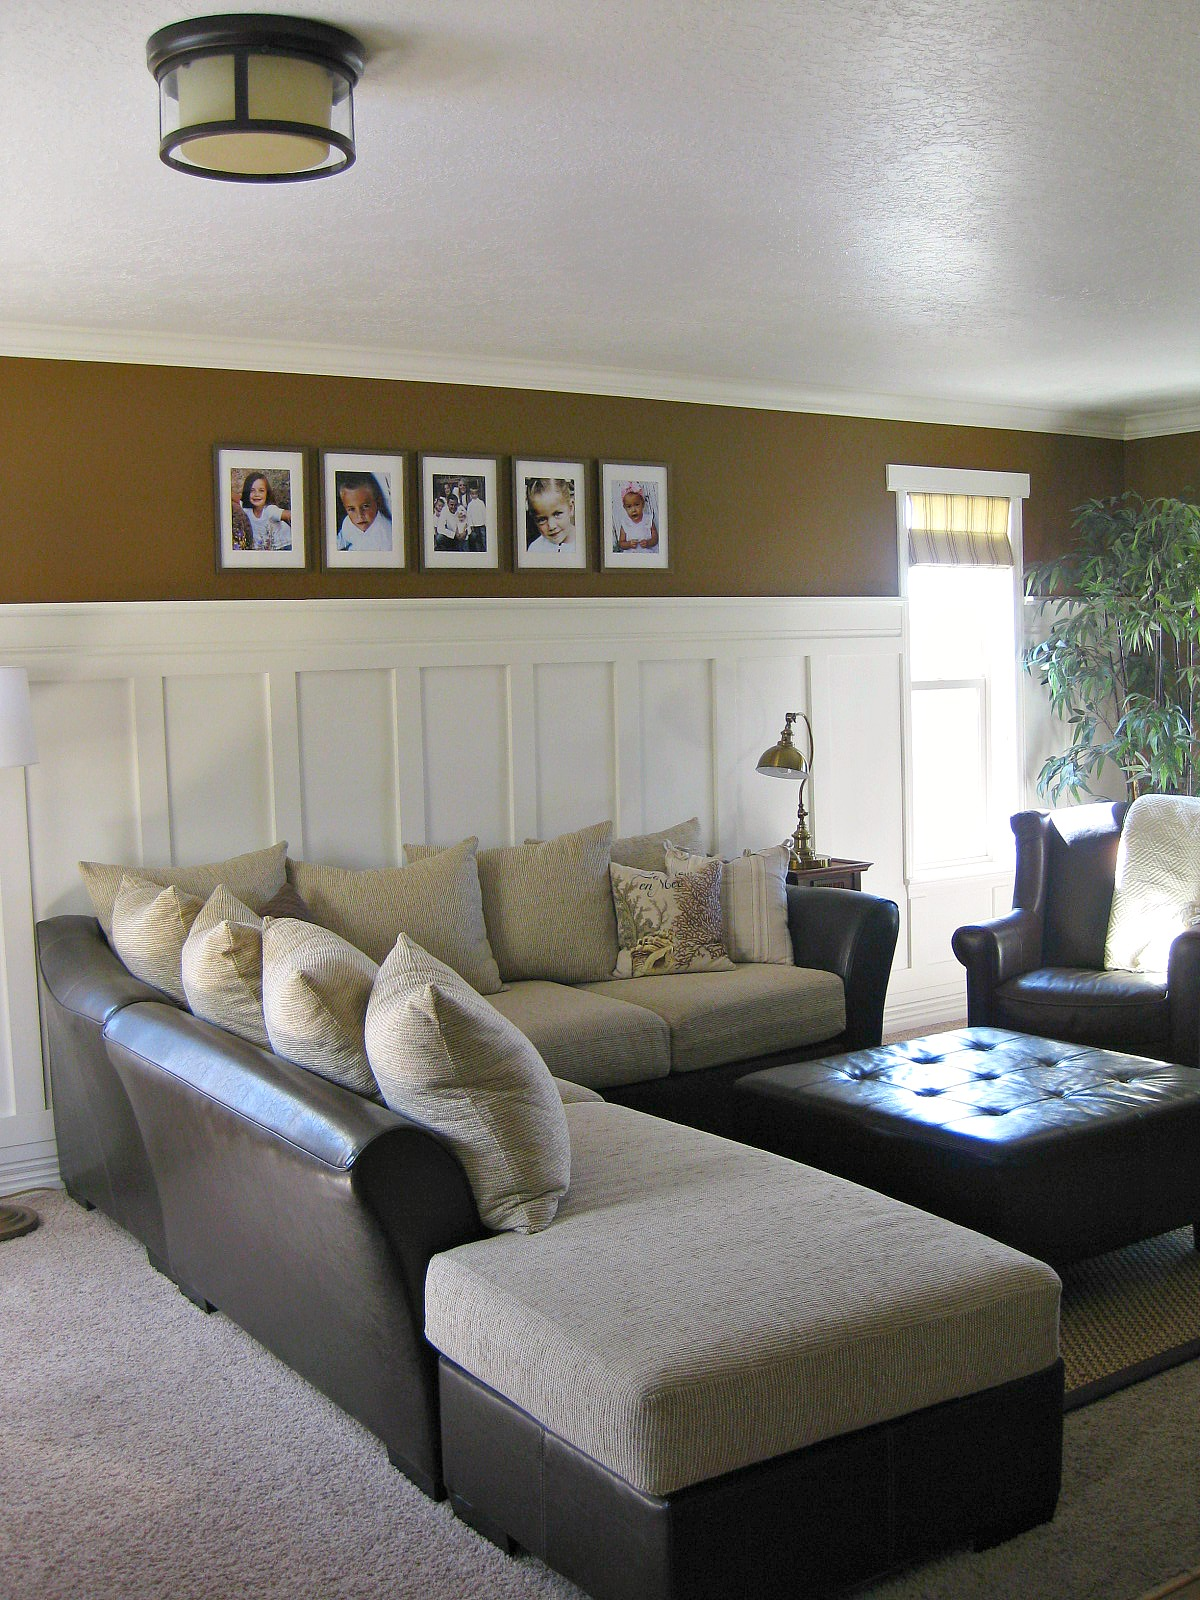 Tda decorating and design stairwell board batten tutorial for Decorating walls in living room